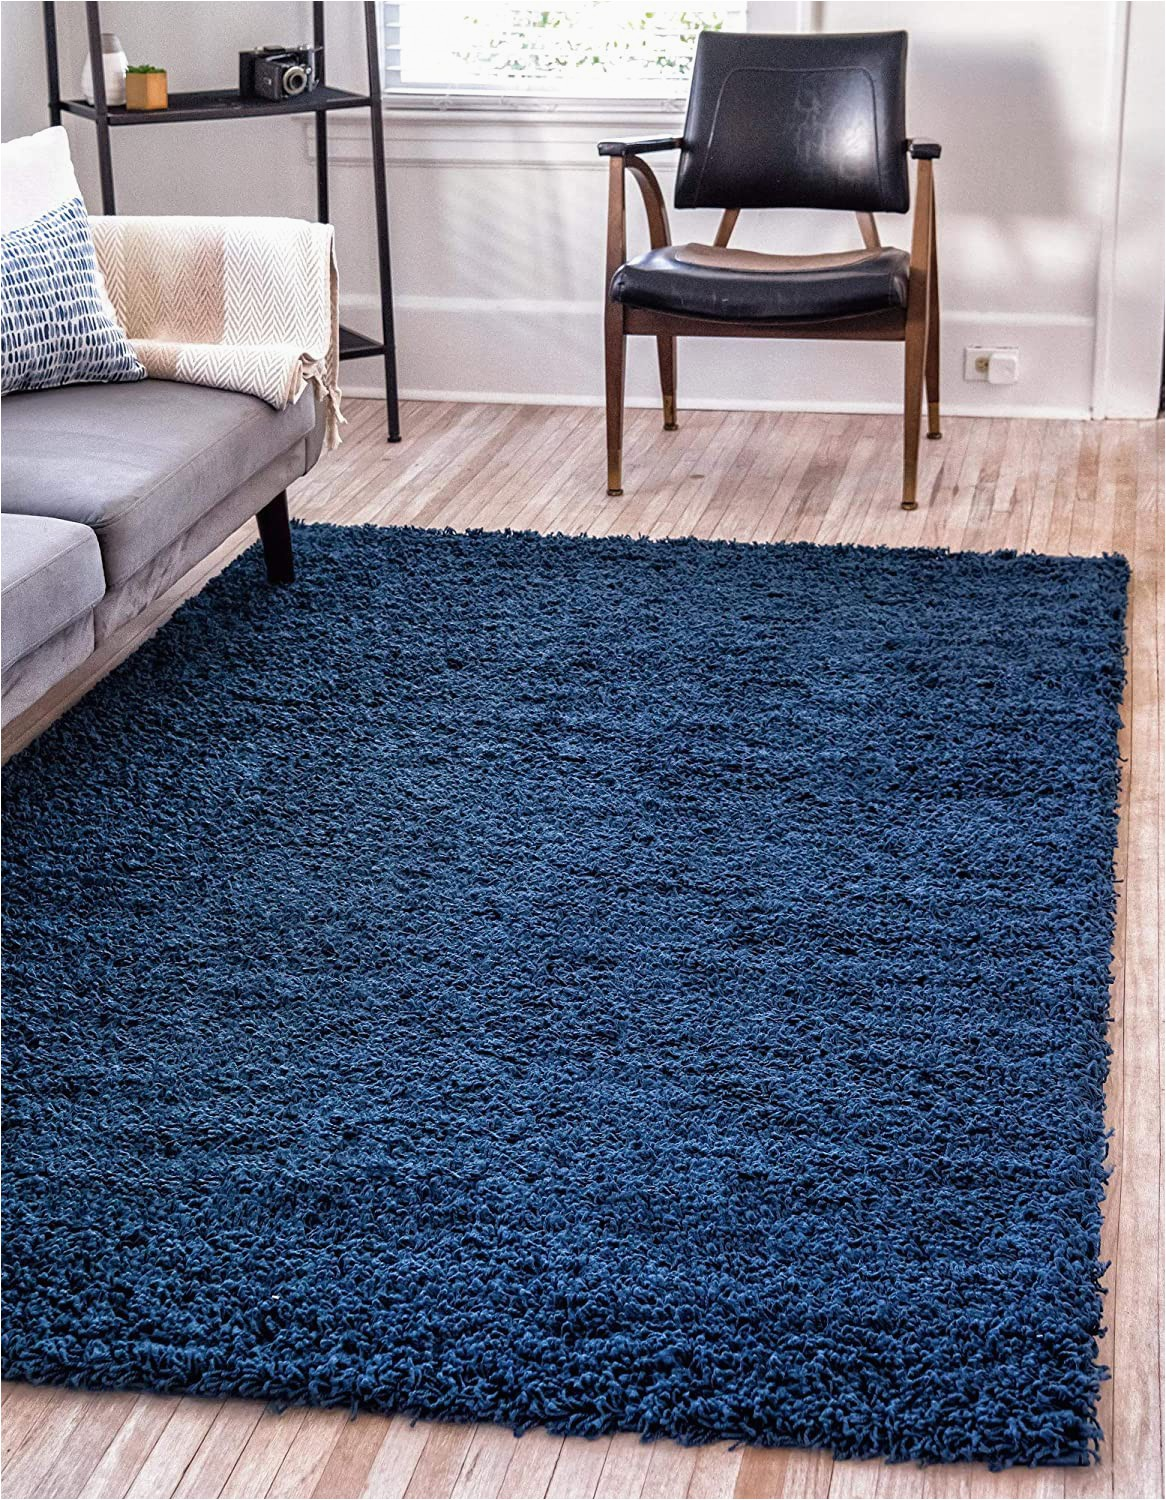 Dark Navy Blue area Rug Unique Loom solo solid Shag Collection Modern Plush Navy Blue area Rug 8 0 X 10 0